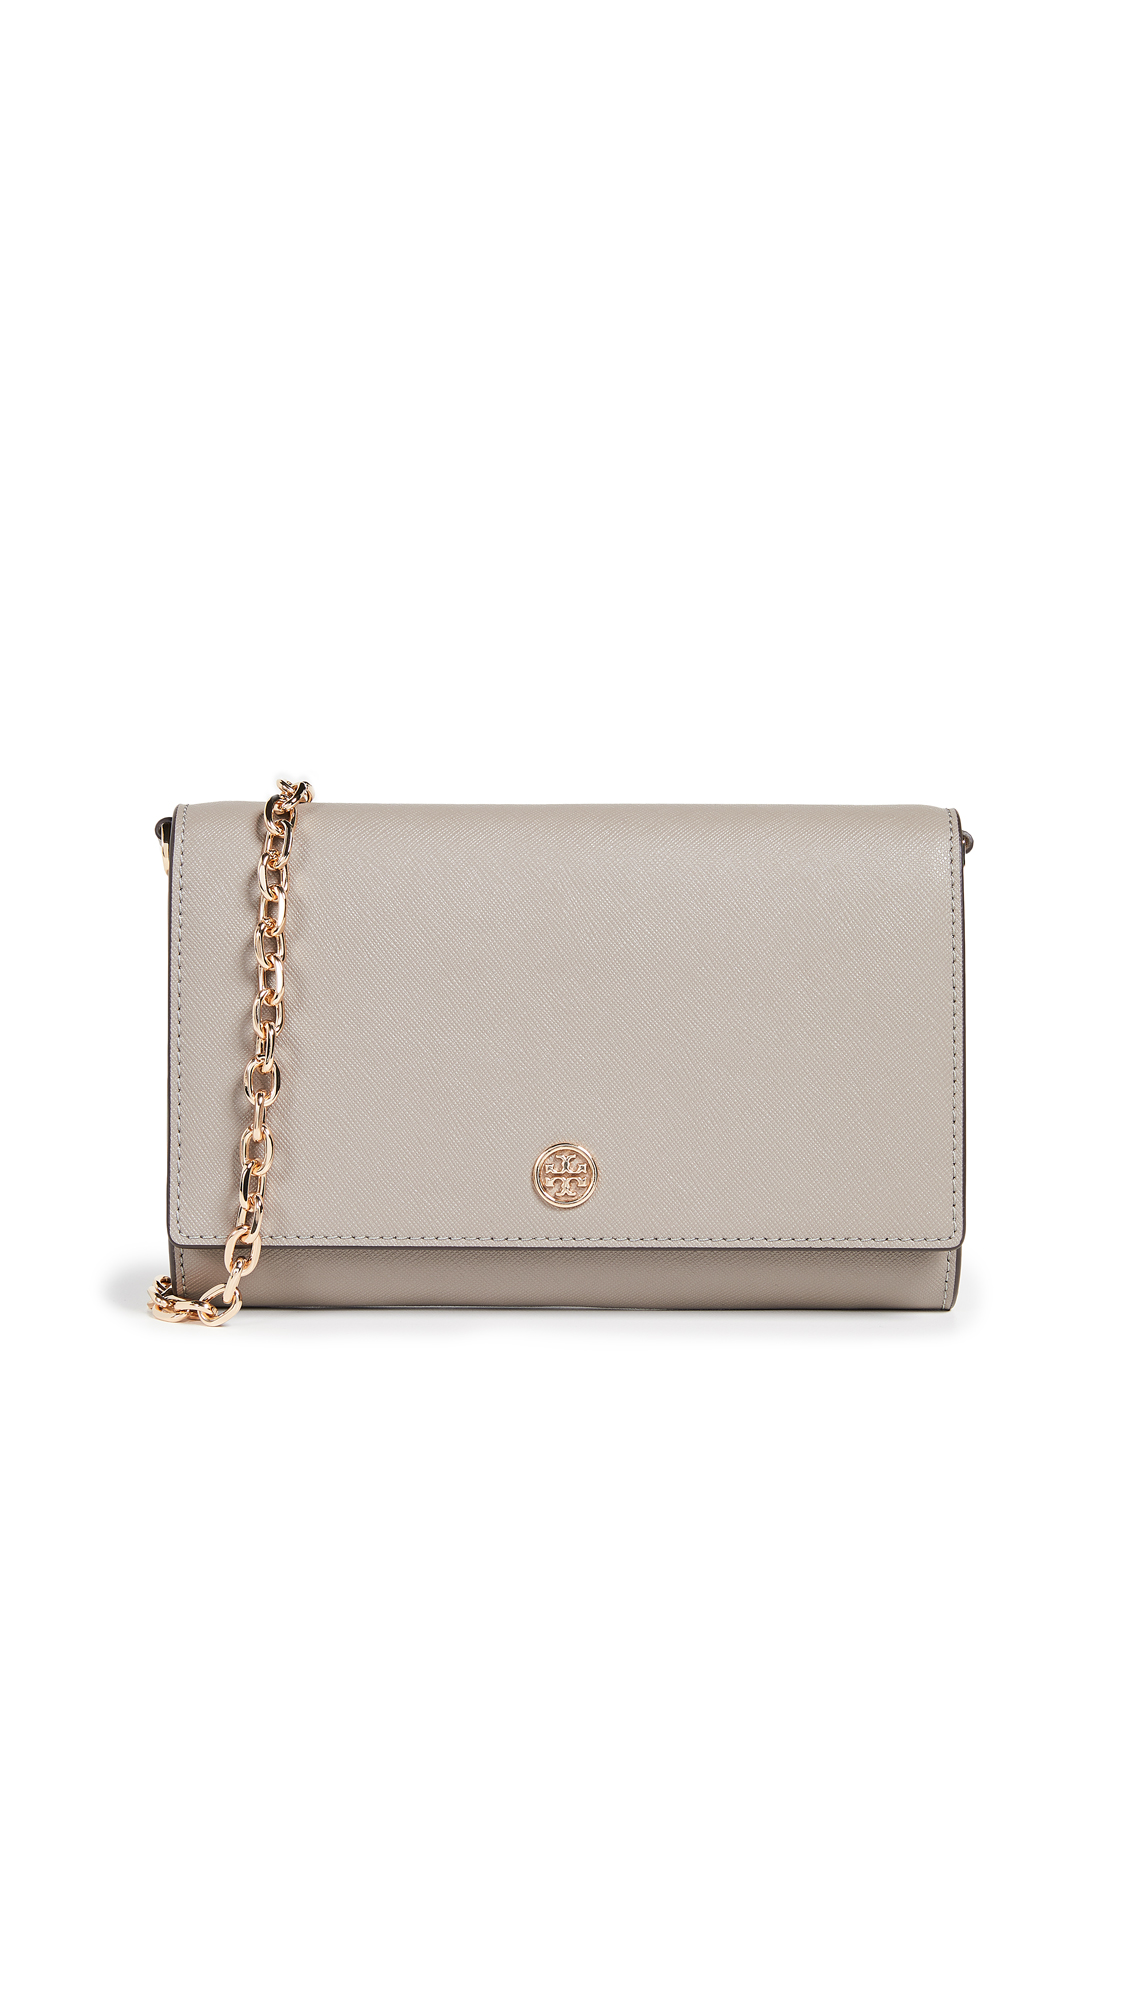 Tory Burch Robinson Chain Wallet Bag